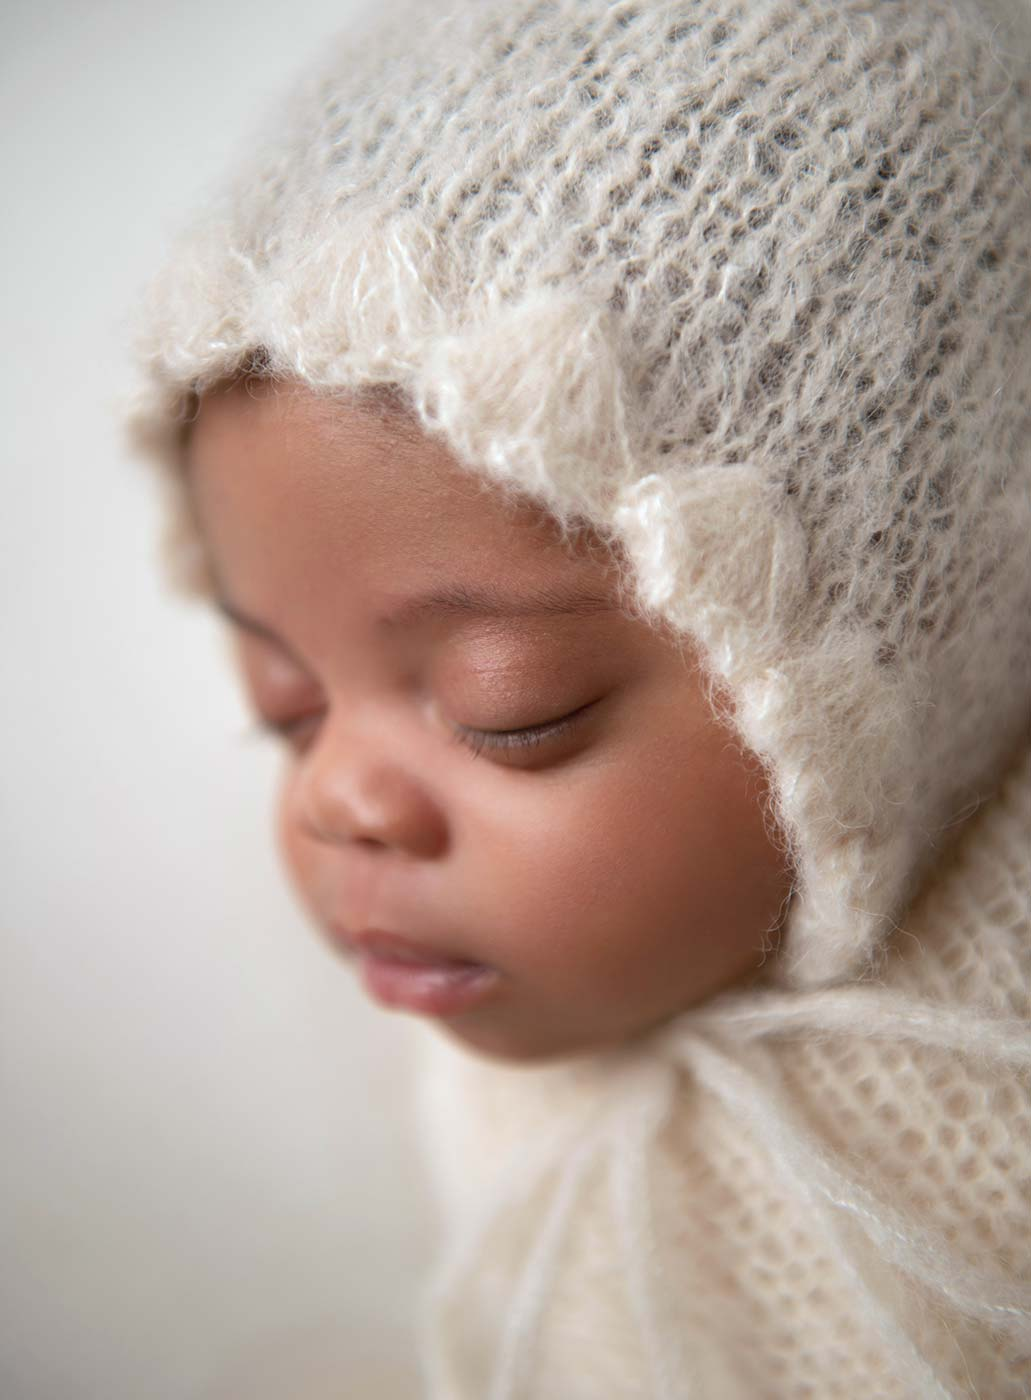 closeup face of infant baby with long lashes and pouty lips